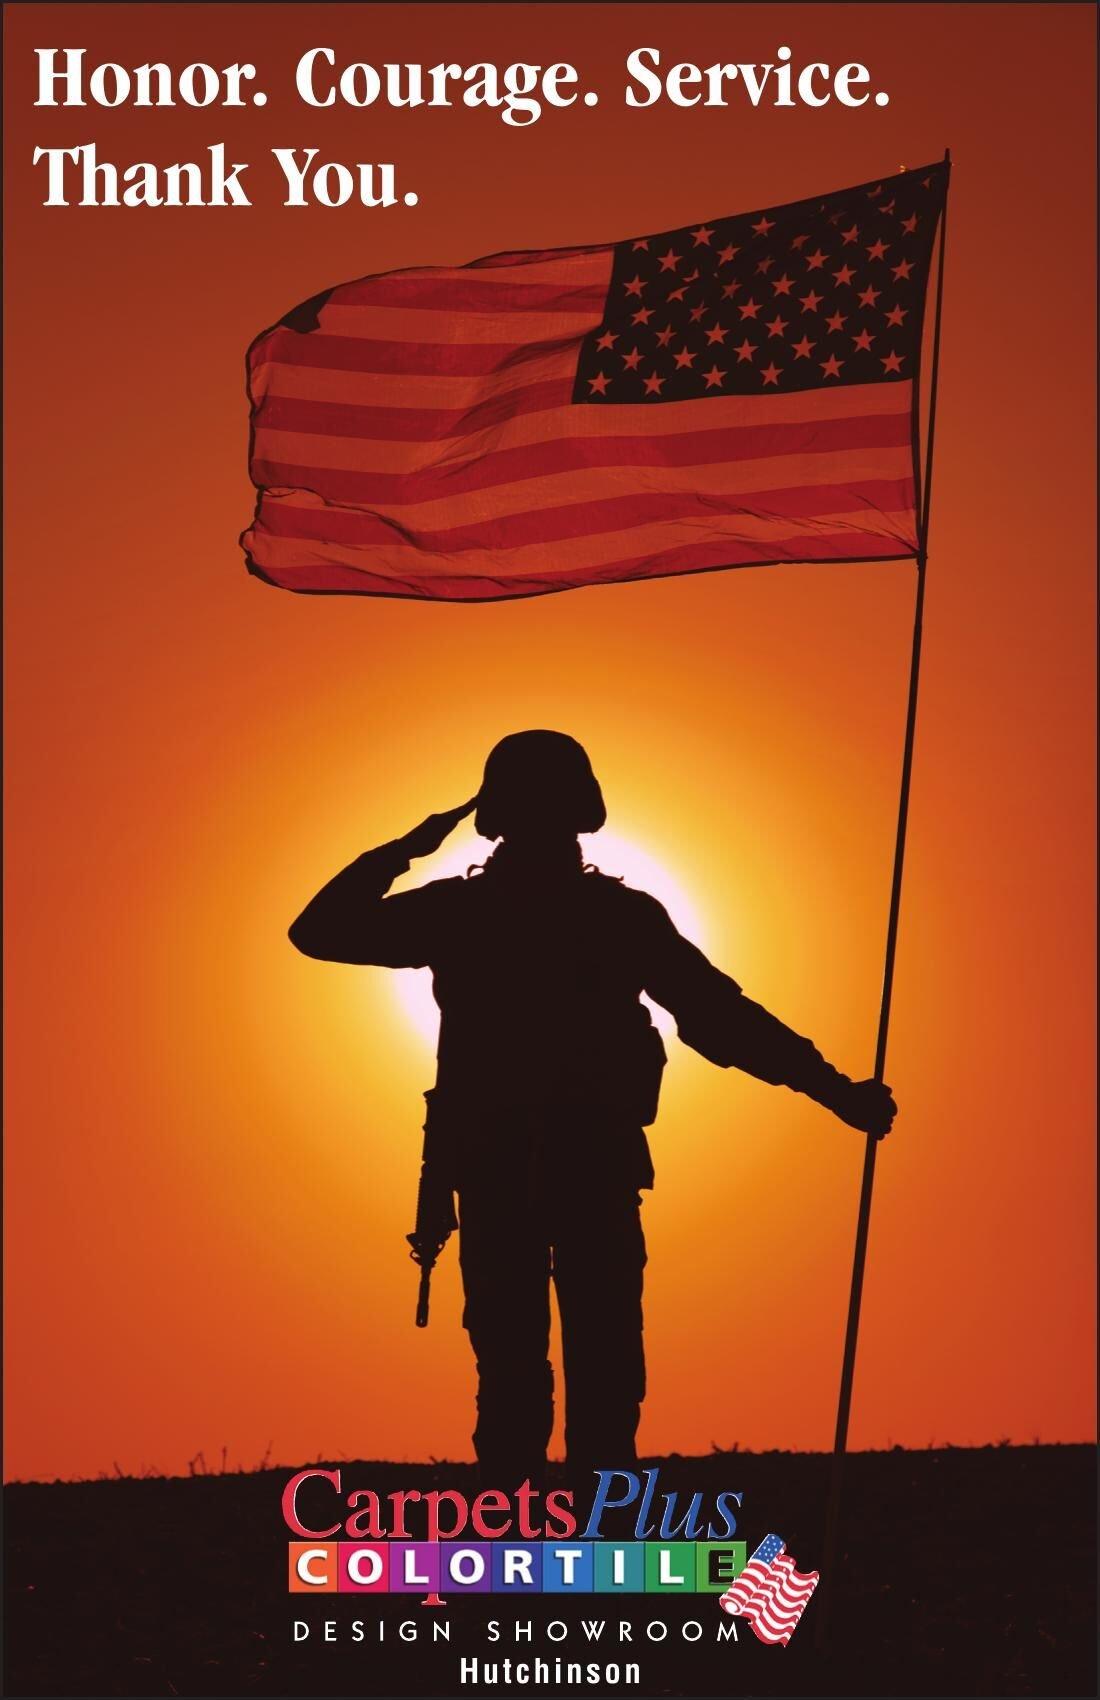 Honor. Courage. Service. Thank You.